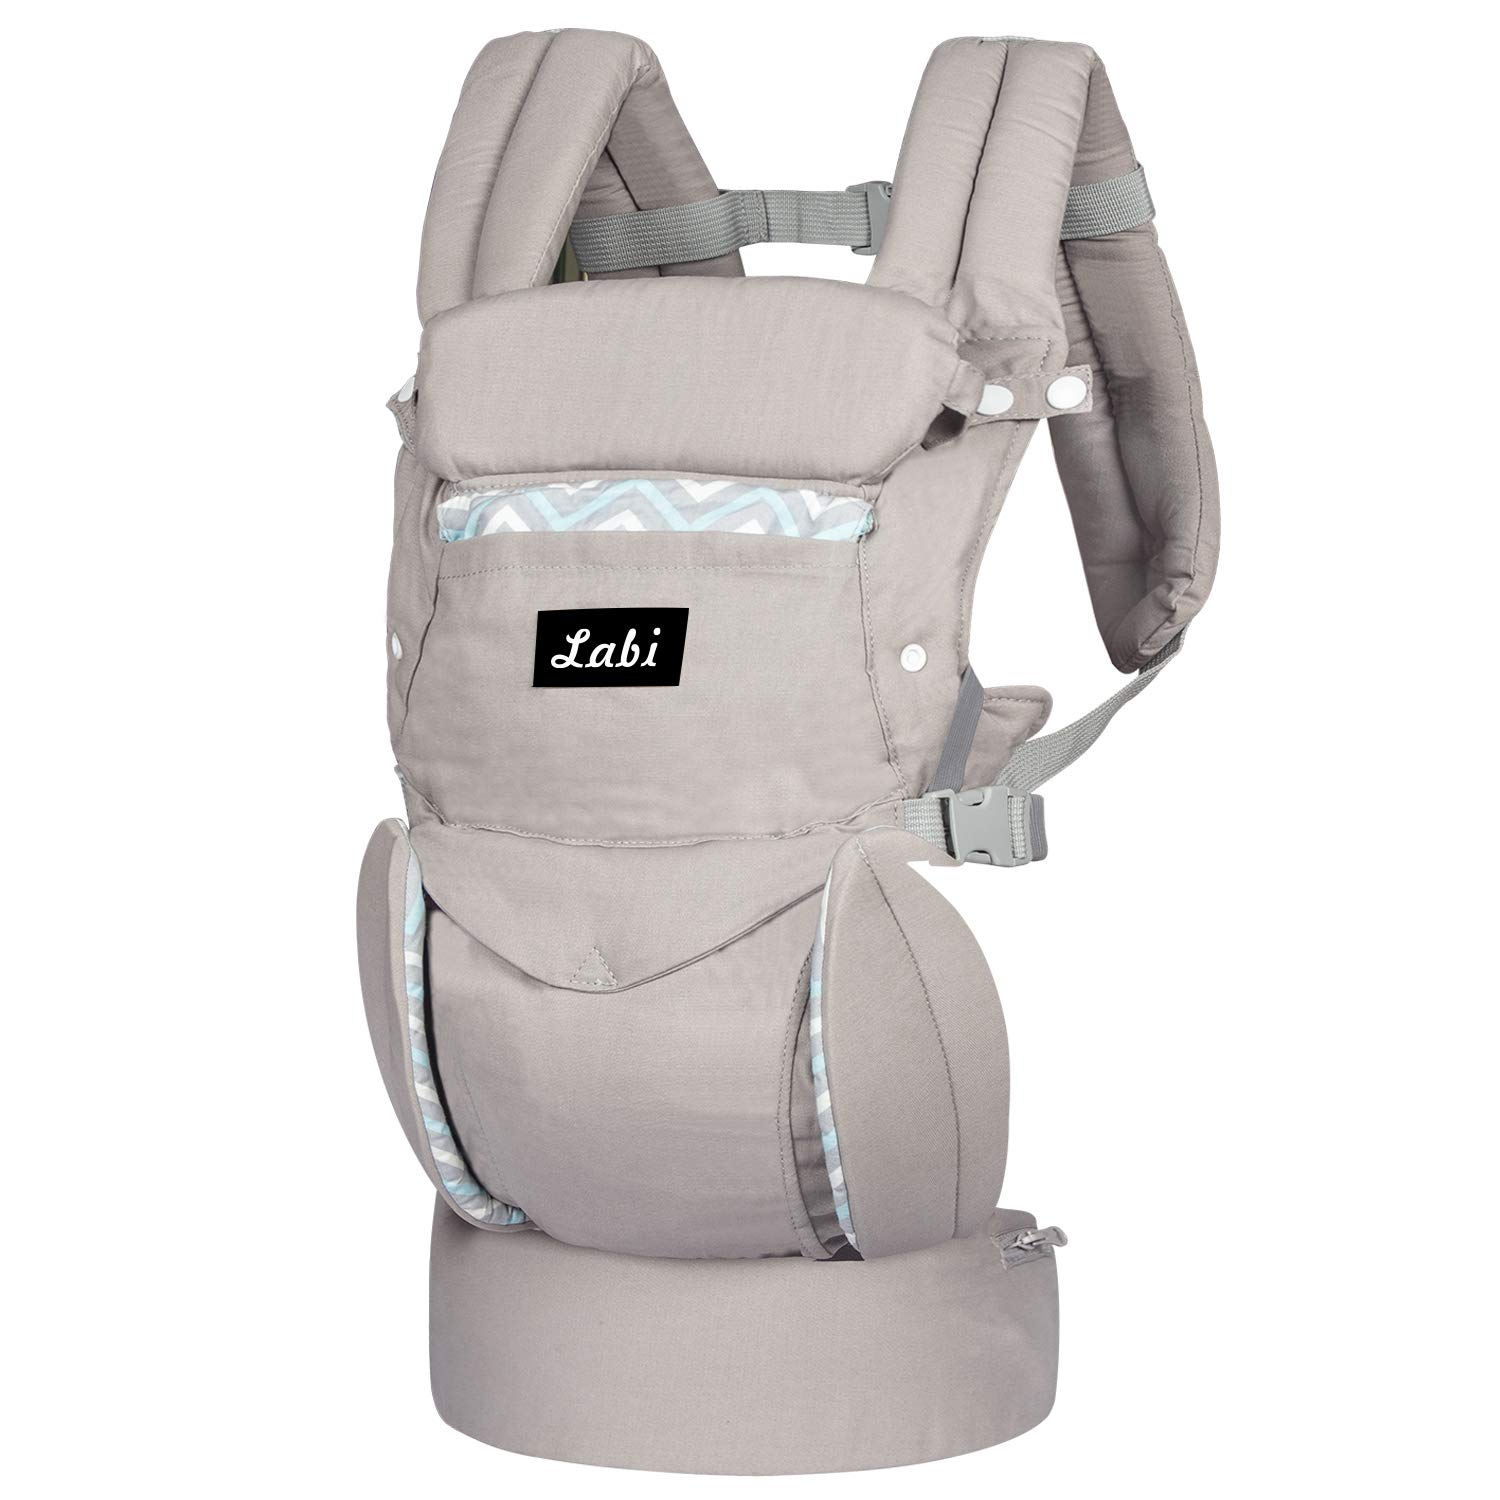 Labi Premium Cotton Baby Carrier with Adjustable Bucket Seat, Ergonomic All Position Baby Backpack with Tuckaway Hood, One of The Most Comfortable Baby Carrier Wrap for Infant Toddler, Grey